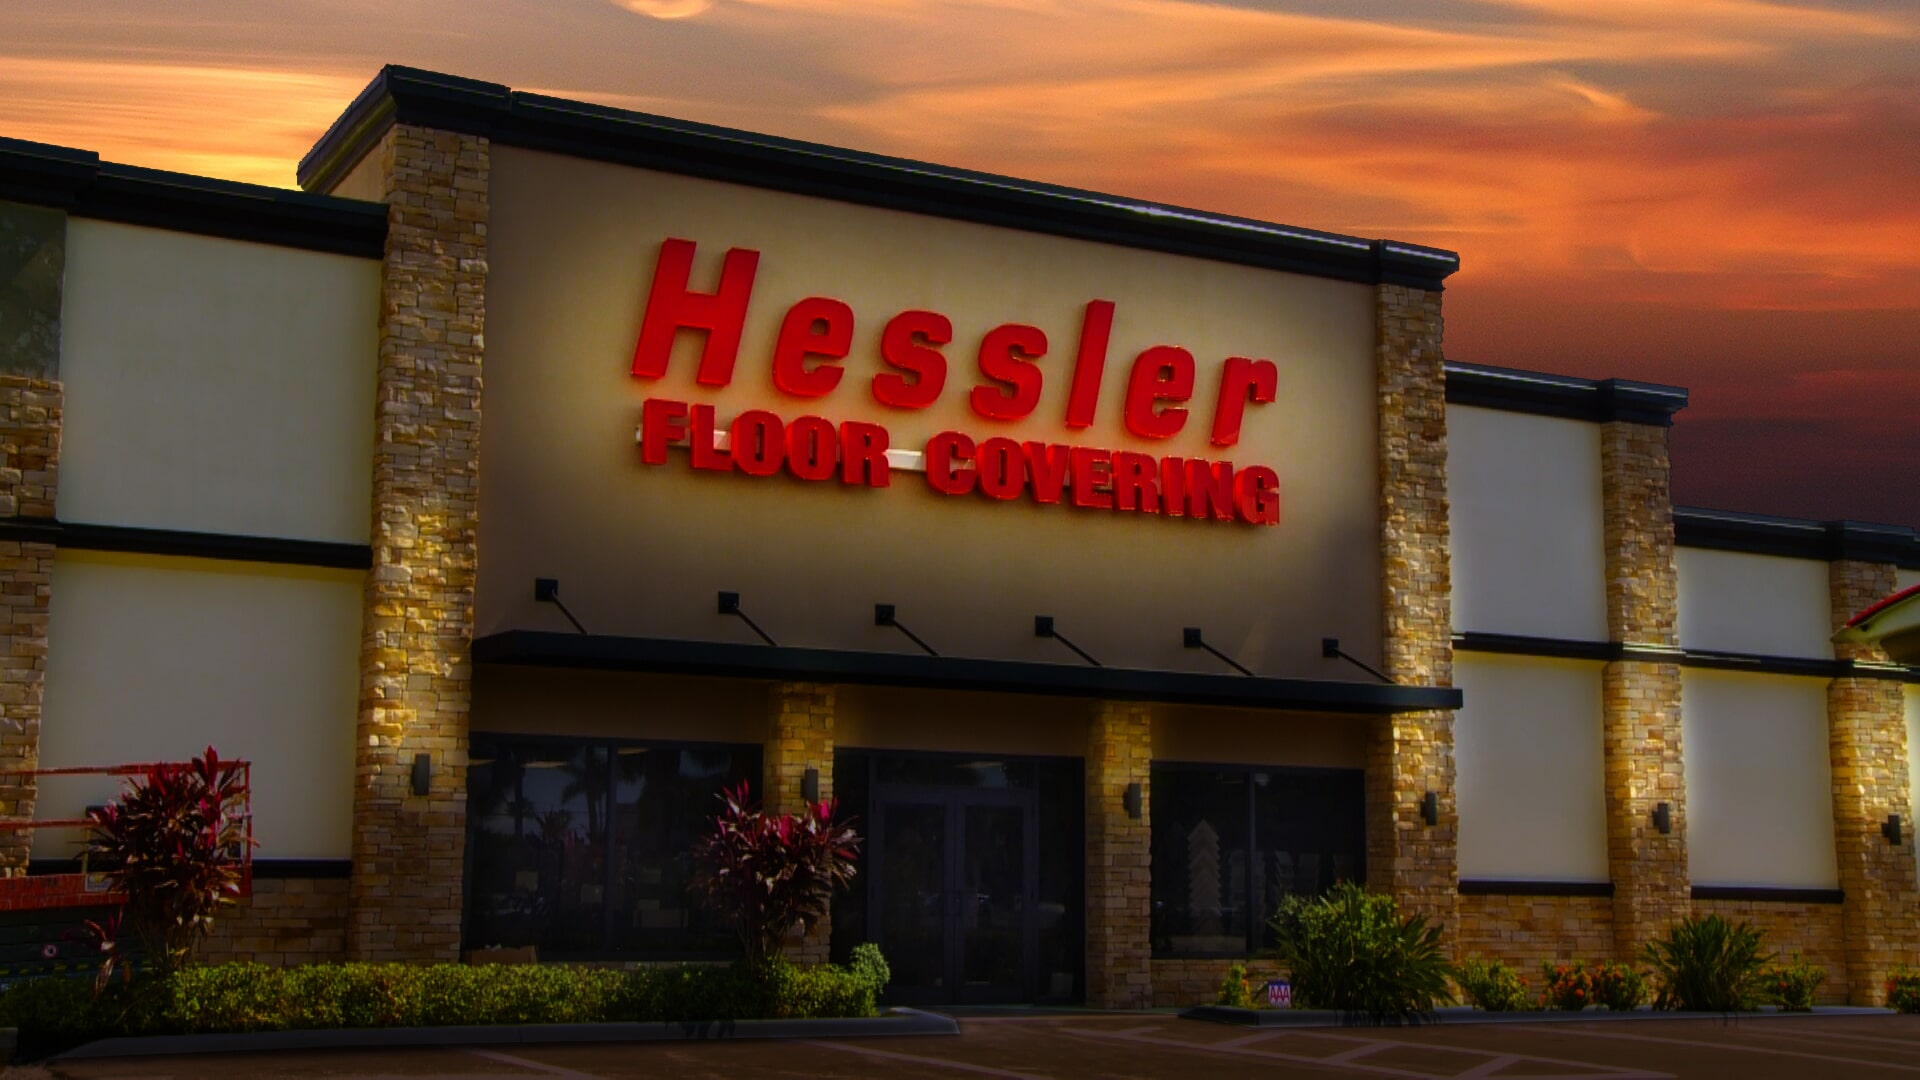 Hessler Floor Covering - 12551 S Cleveland Ave, Fort Myers, FL 33907